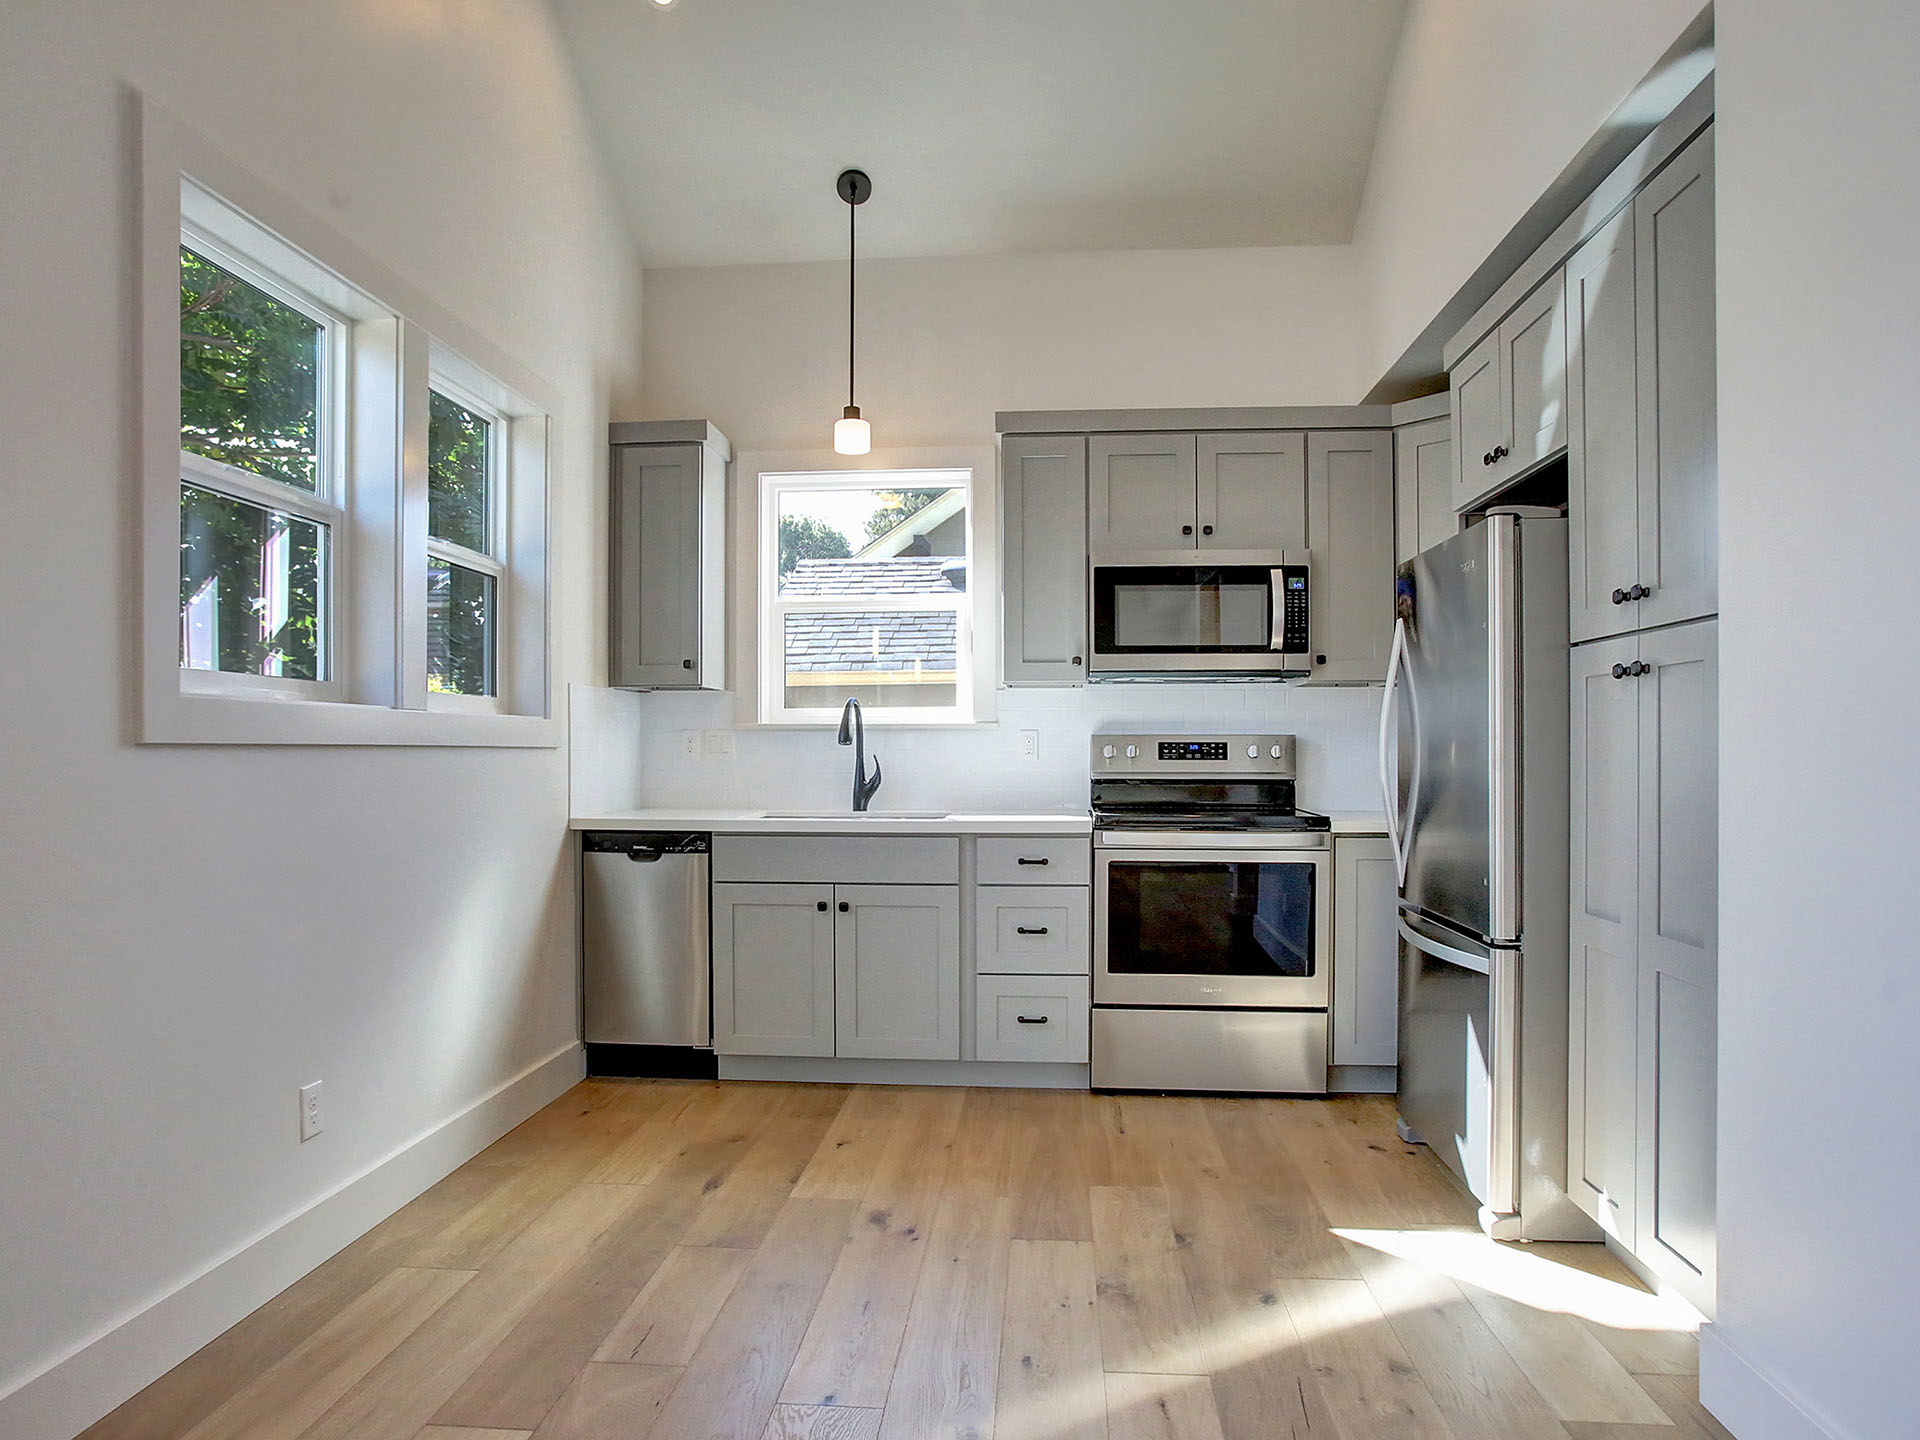 A custom built micro house in Portland from The Powell Group